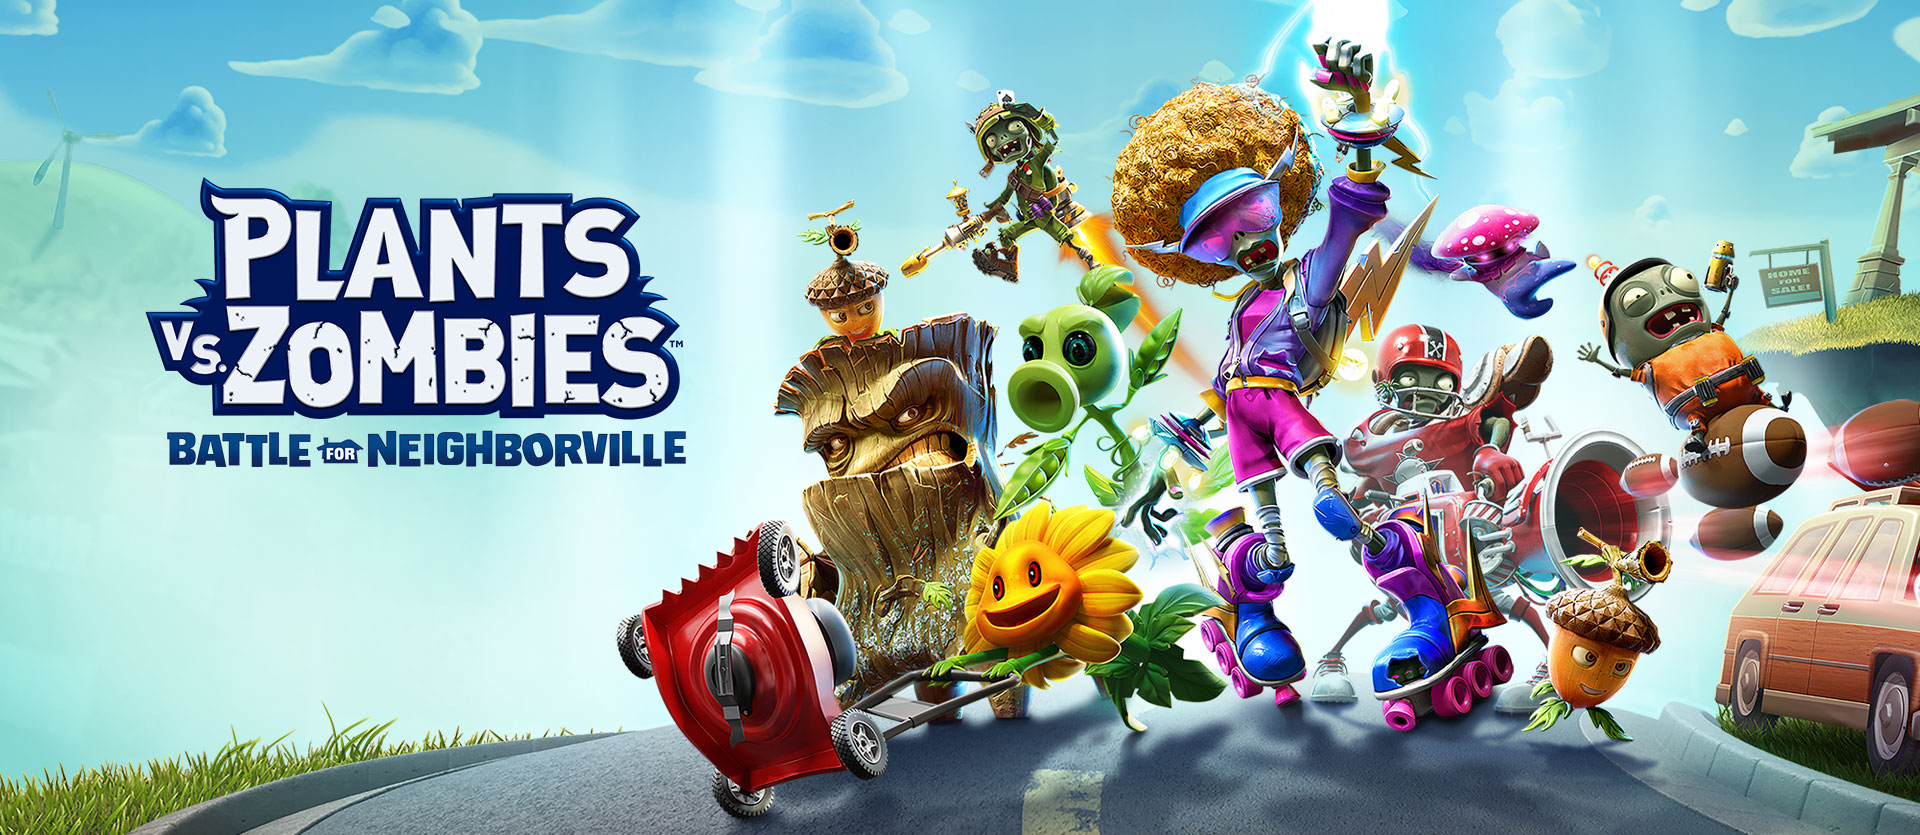 Plants vs. Zombies: Battle for Neighborville, useita hahmoja poseeraa kadulla